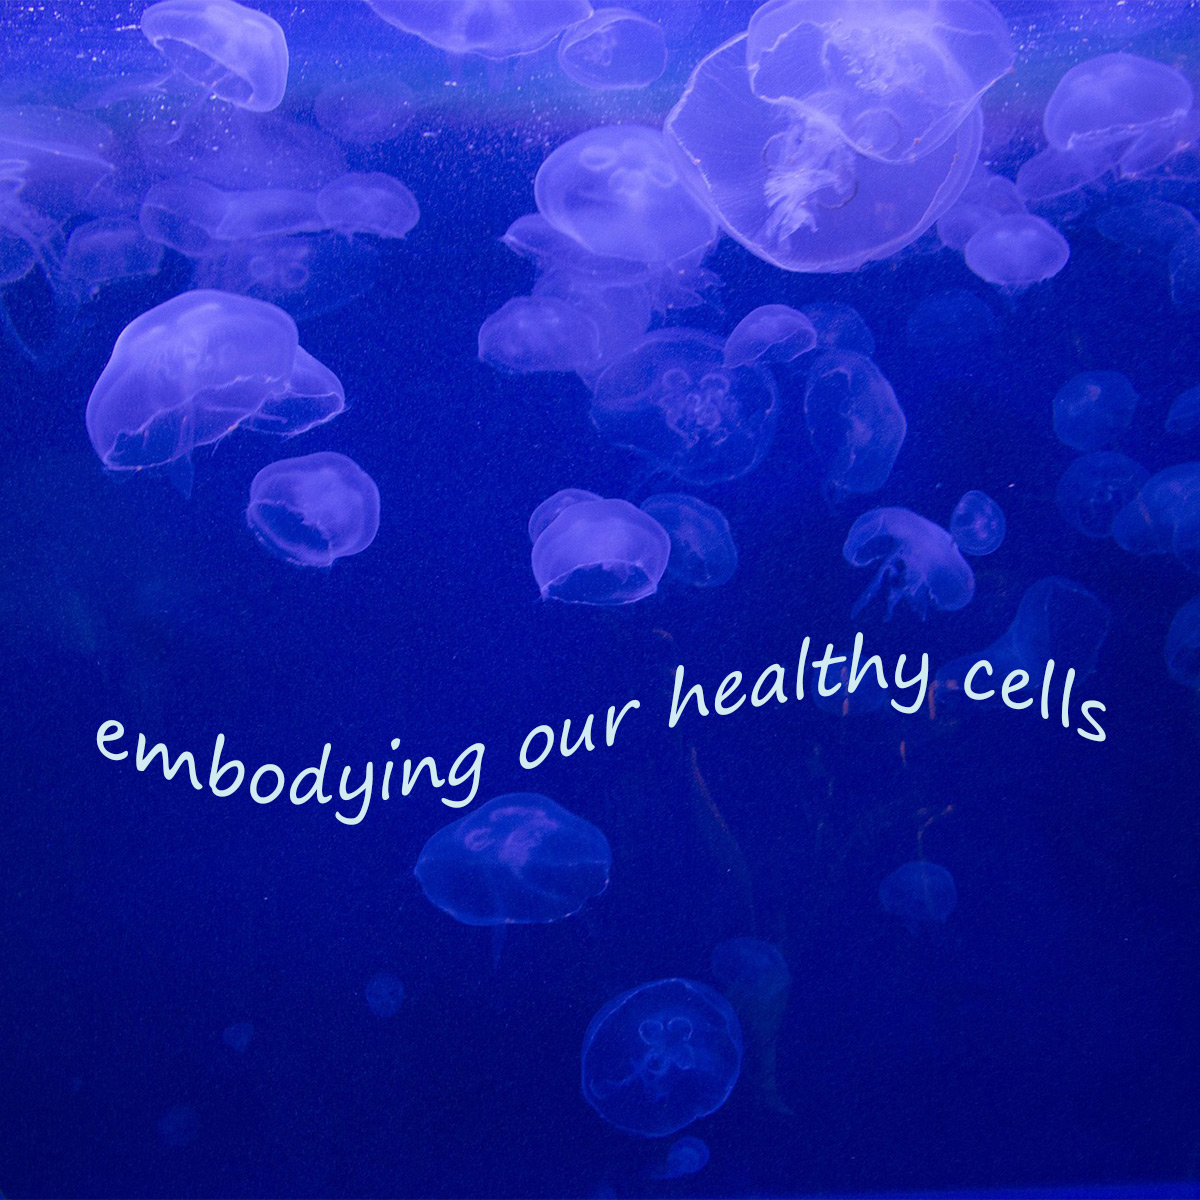 Embodying-Our-Healthy-Cells-1920_square_writing.jpg